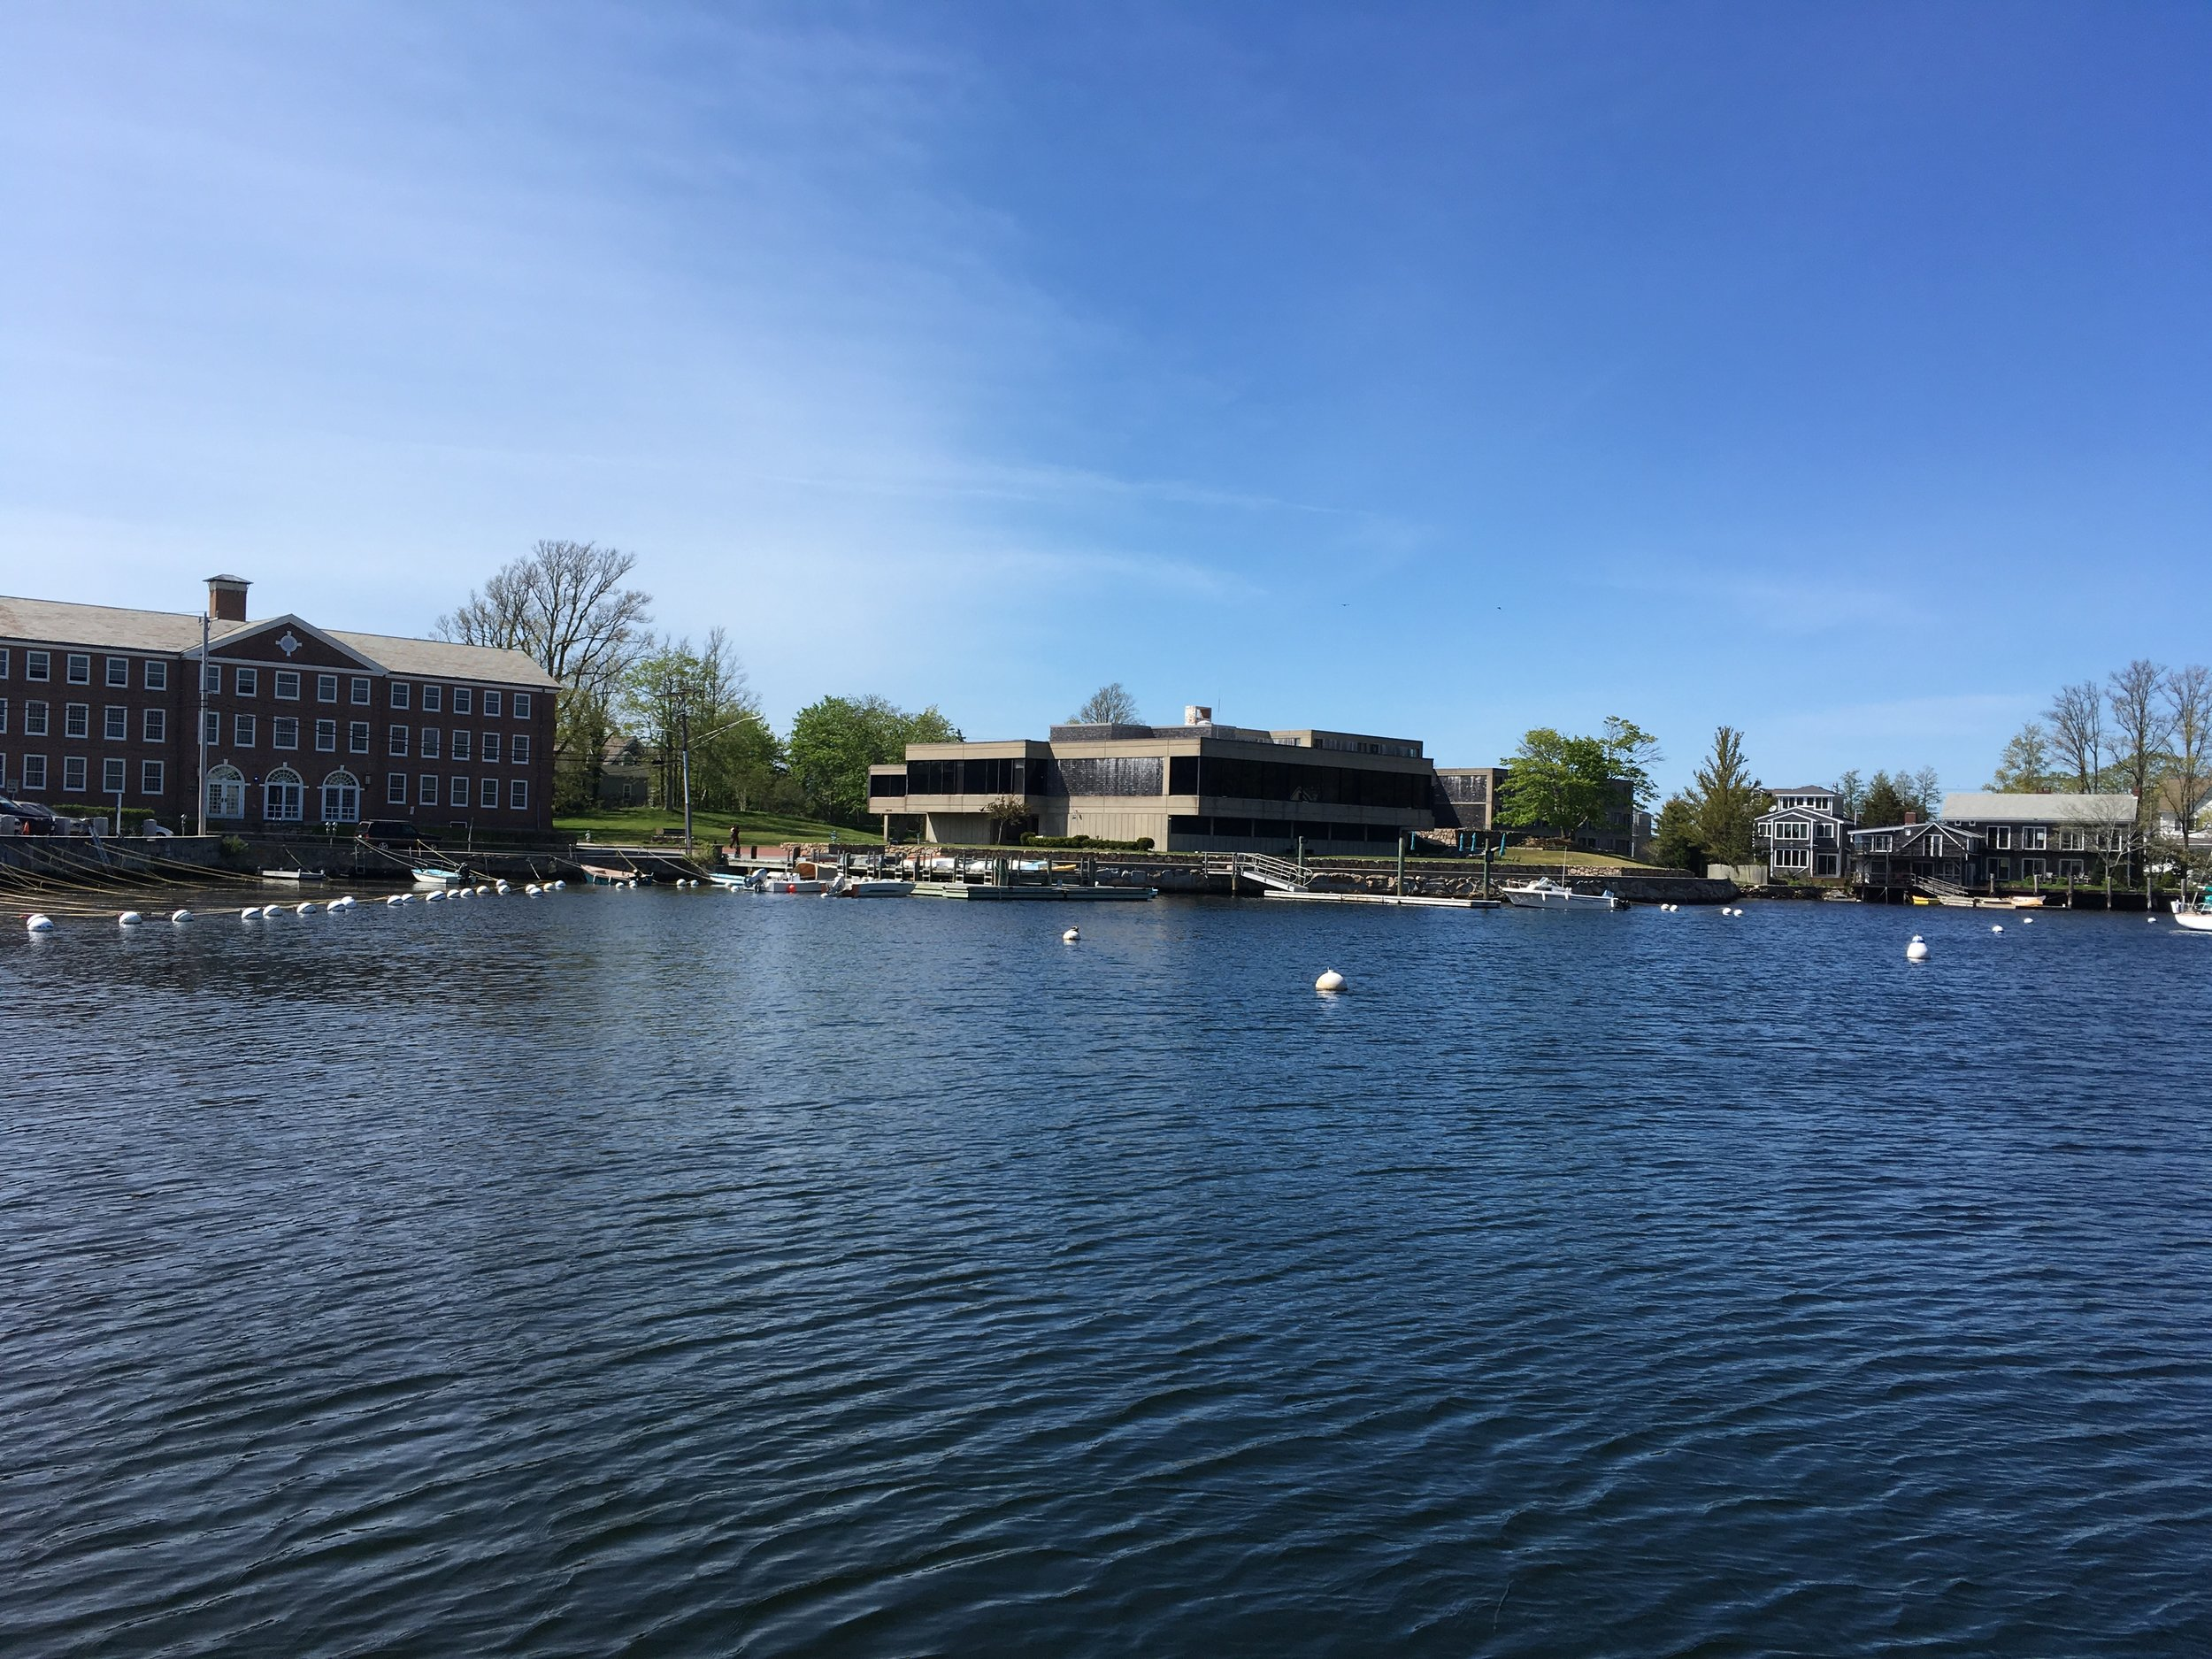 Chris visited the Marine Biological Laboratory at Woods Hole, MA in May 2017 to teach in the  Frontiers in Reproduction  (FIR) course. Pictured in the center, across from Eel Pond, is the Swope Dormitory where faculty and students live and eat during the course.